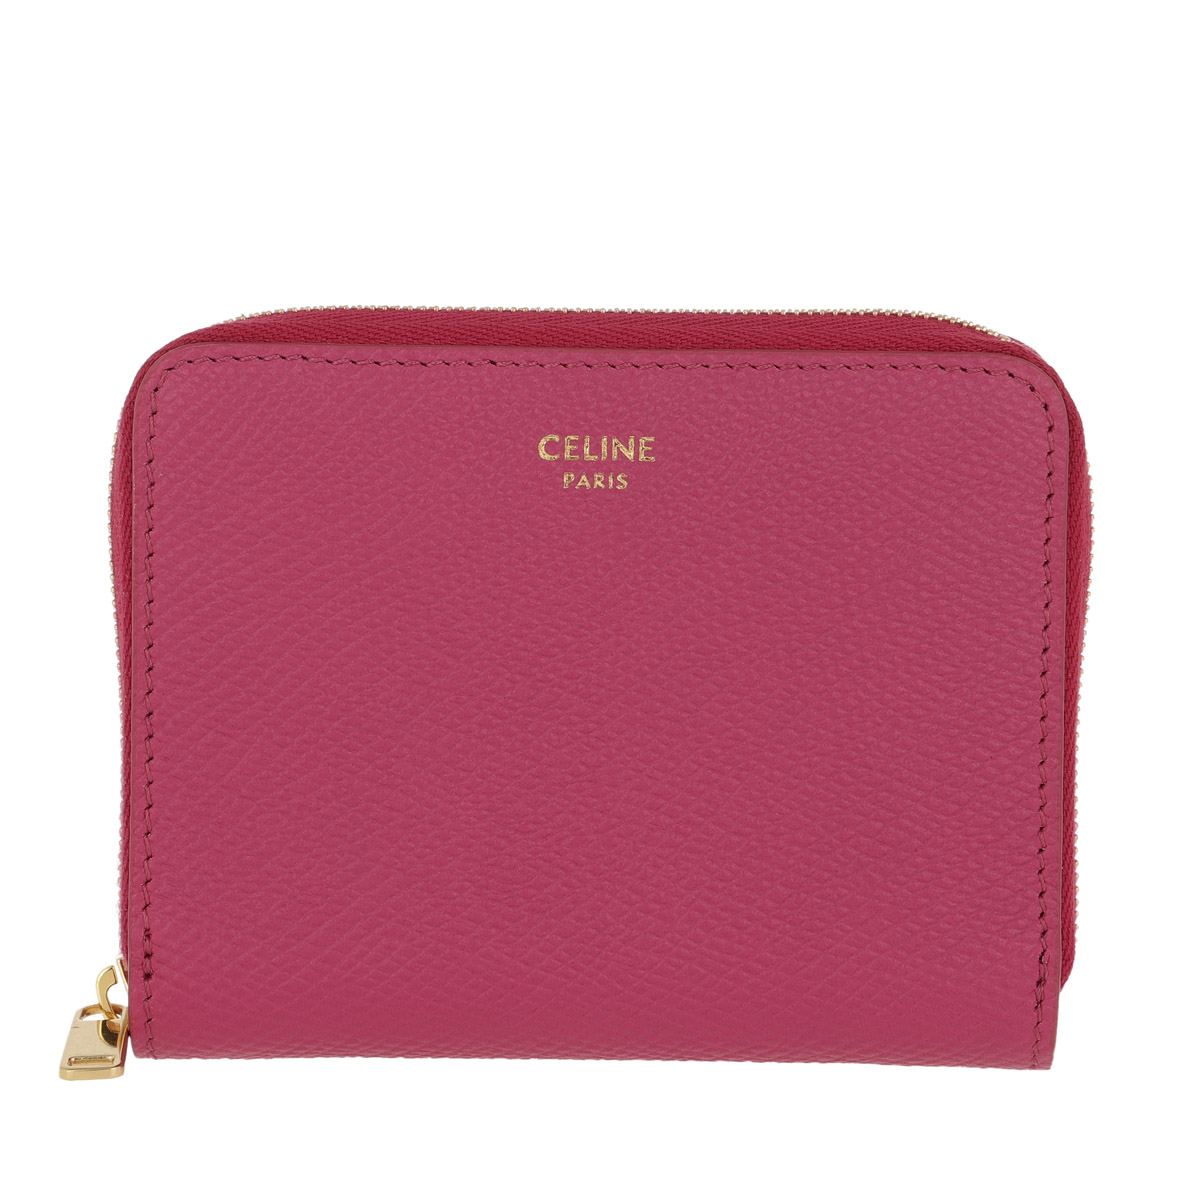 Celine Portemonnaie - Compact Zipped Wallet Grained Leather Pink - in pink - für Damen